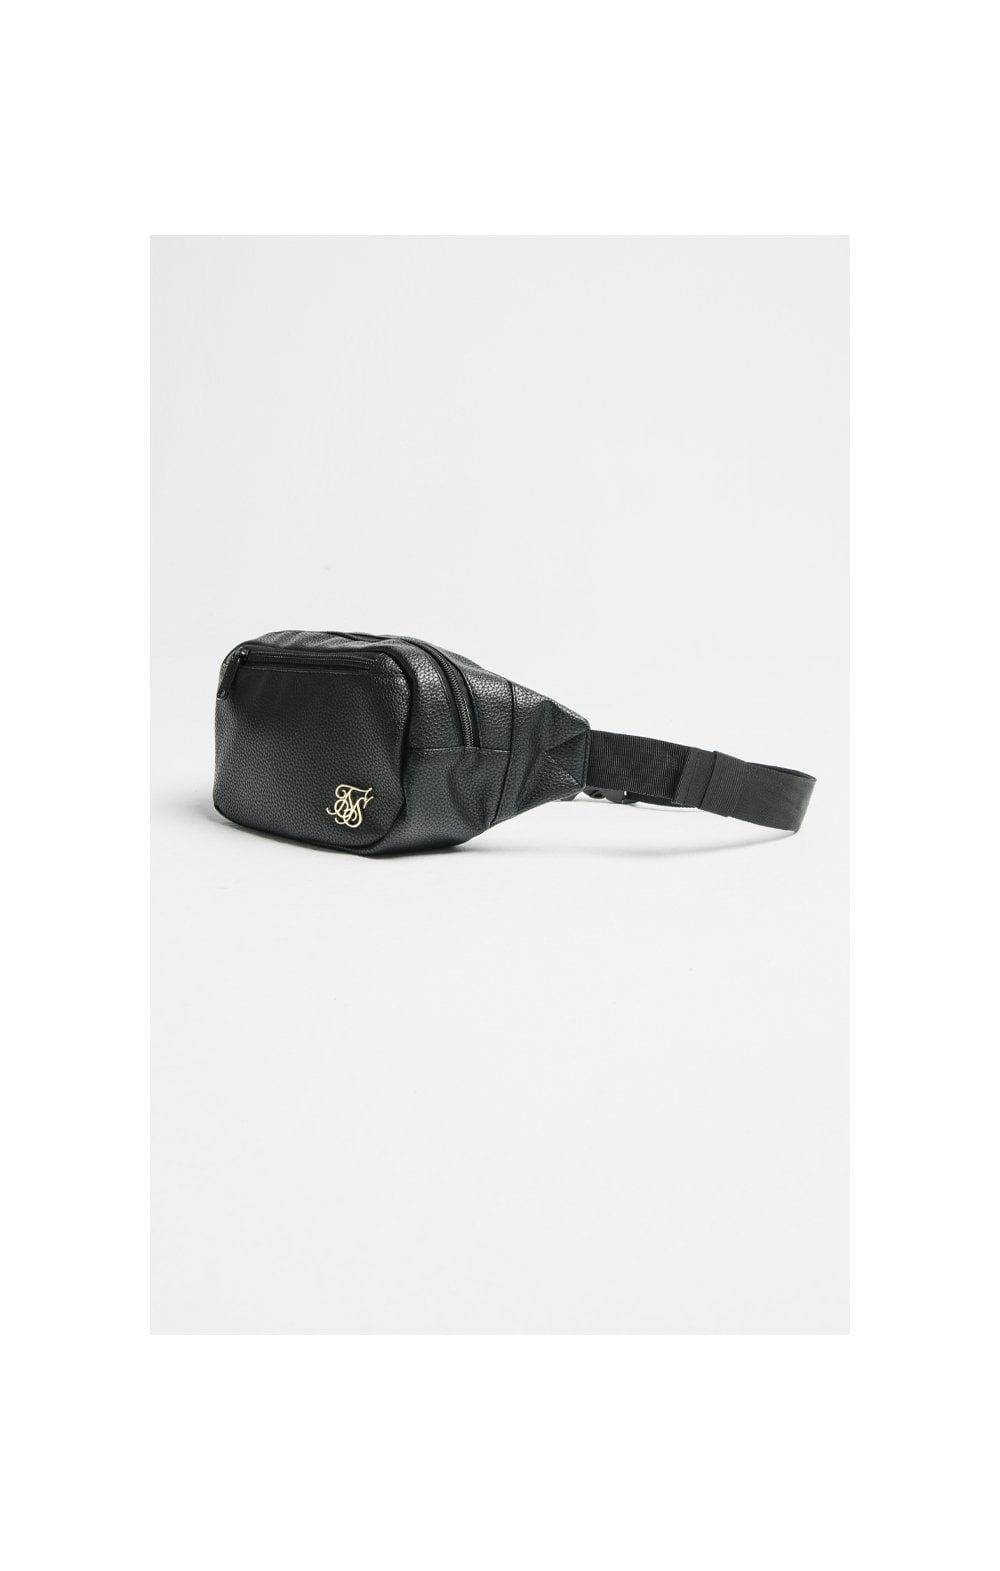 Load image into Gallery viewer, SikSilk Bumbag - Black (2)